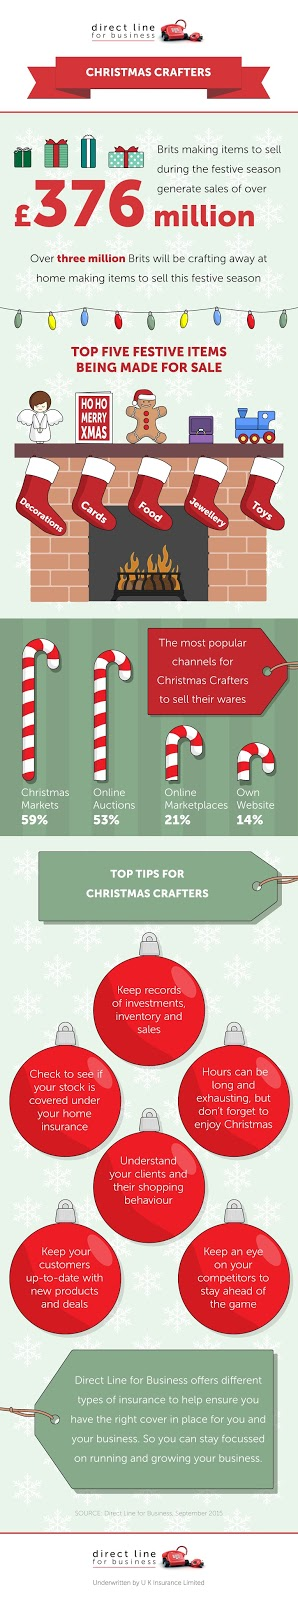 Christmas crafters infographic